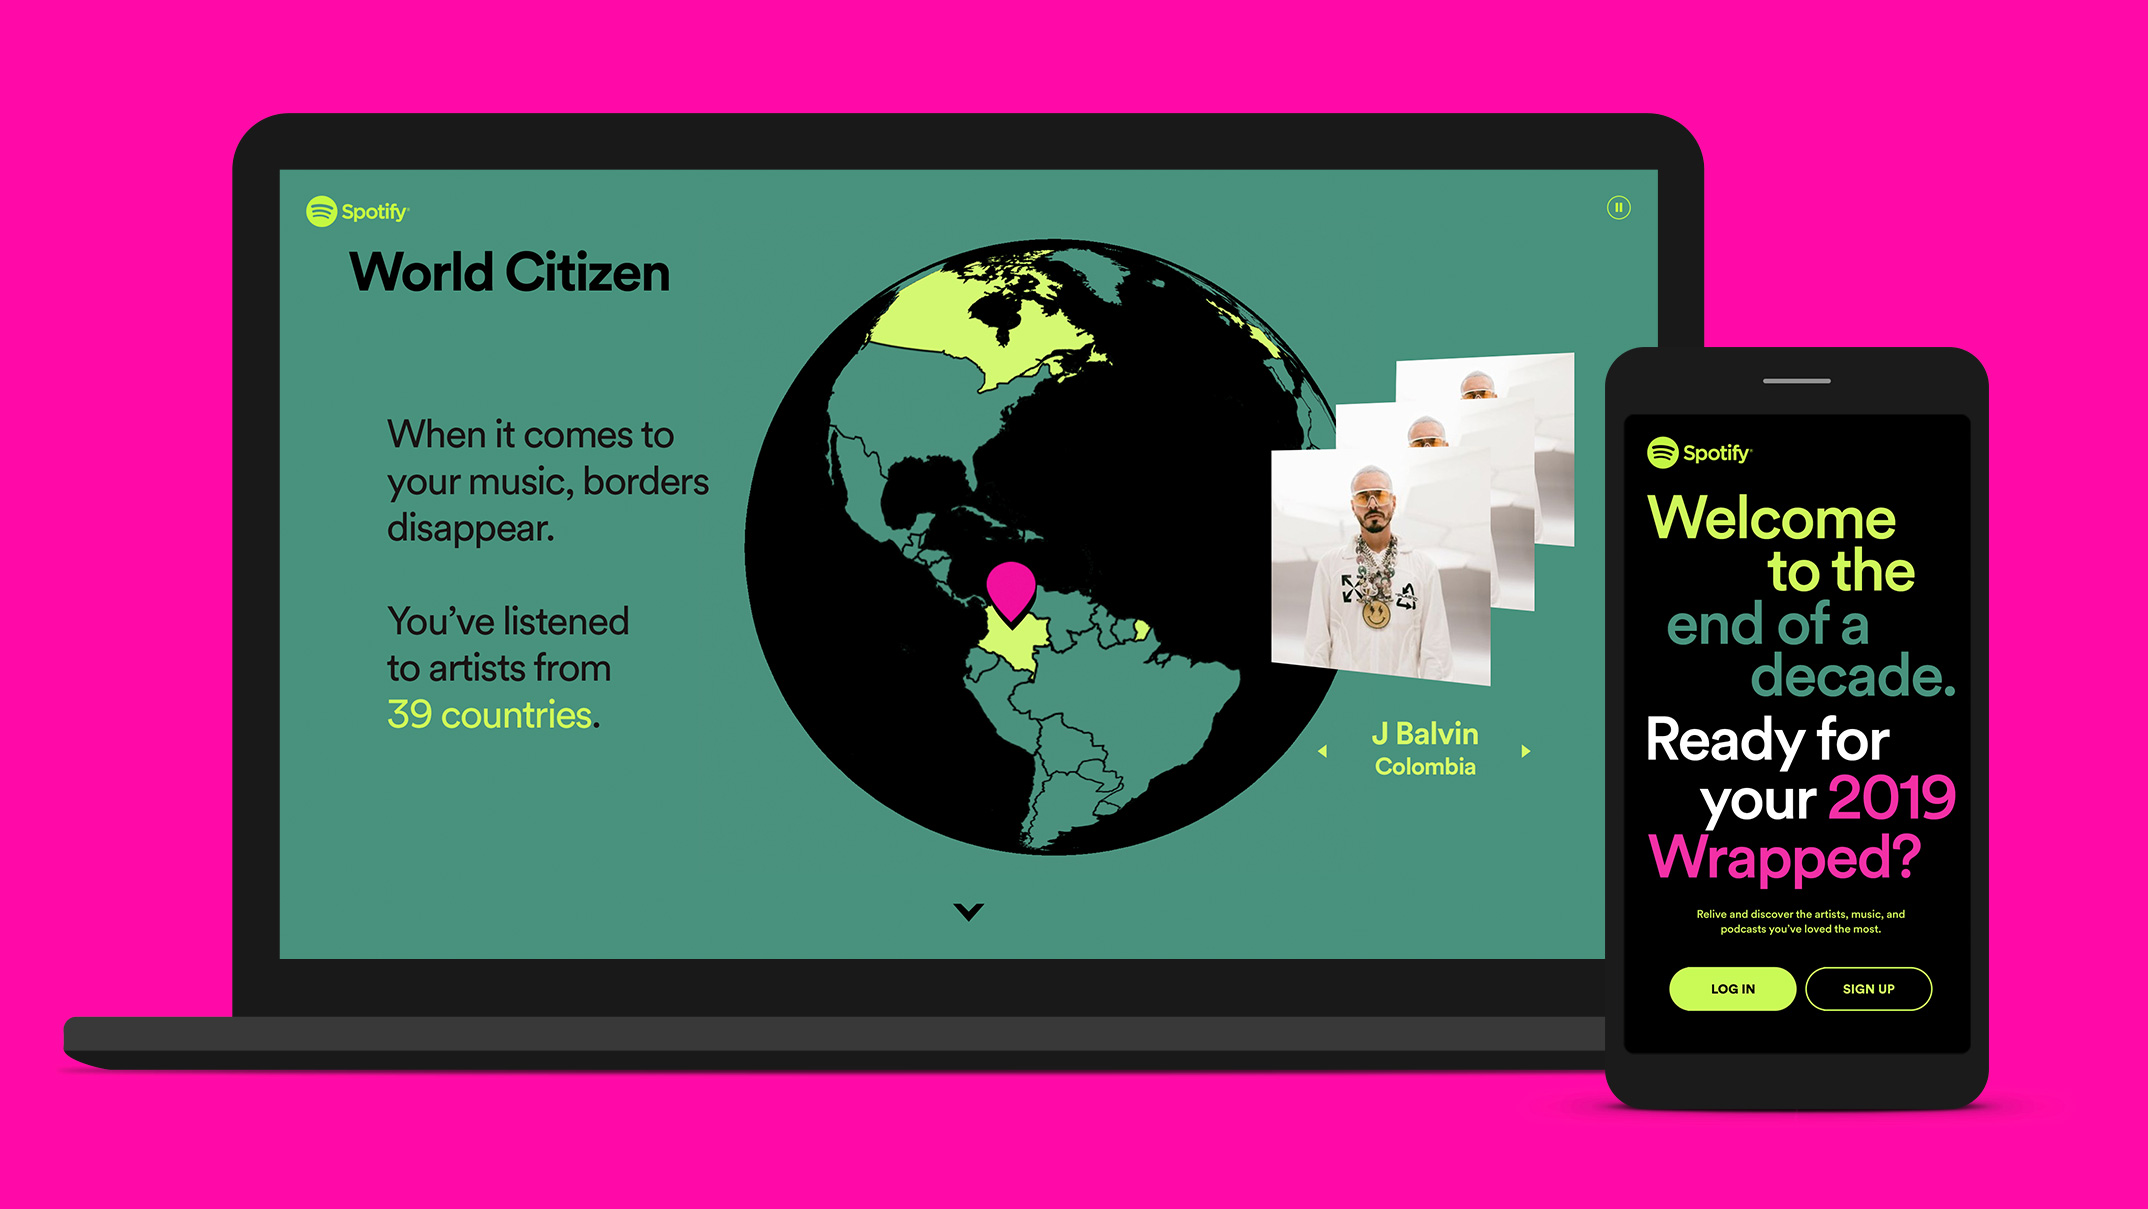 spotify-wrapped-world-citizen